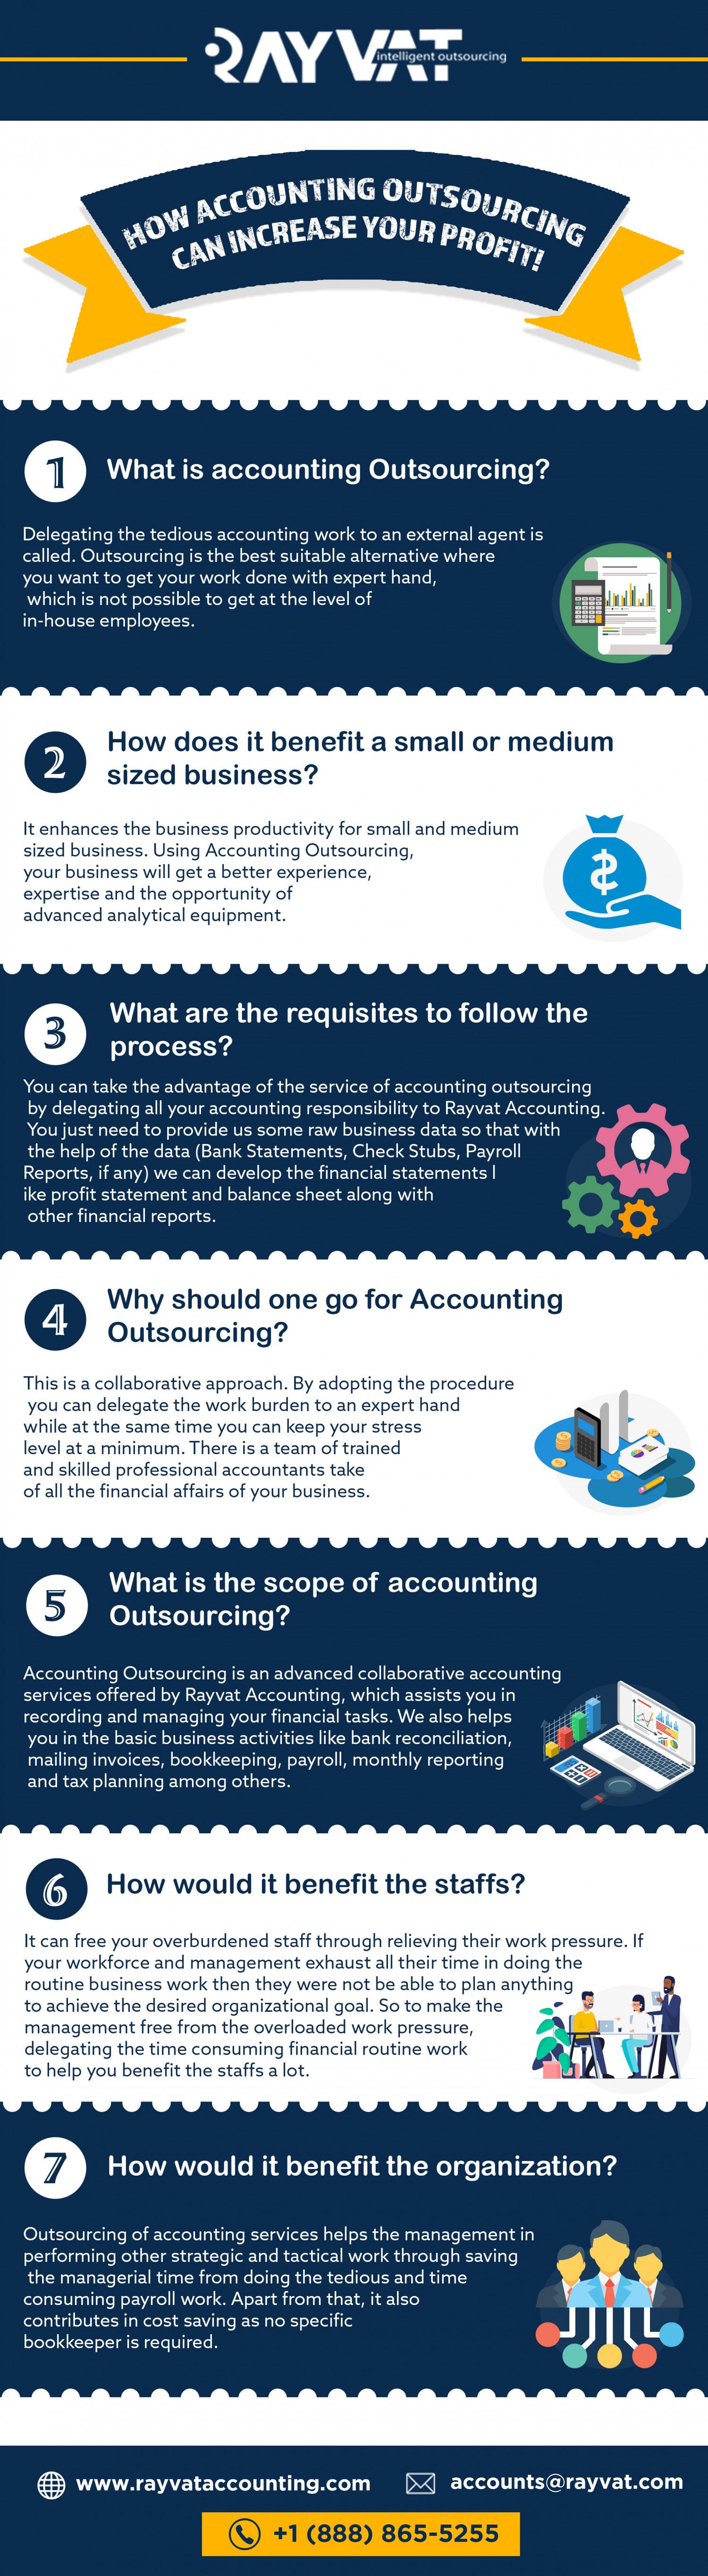 How Accounting Outsourcing Can Increase Your Profit Infographic